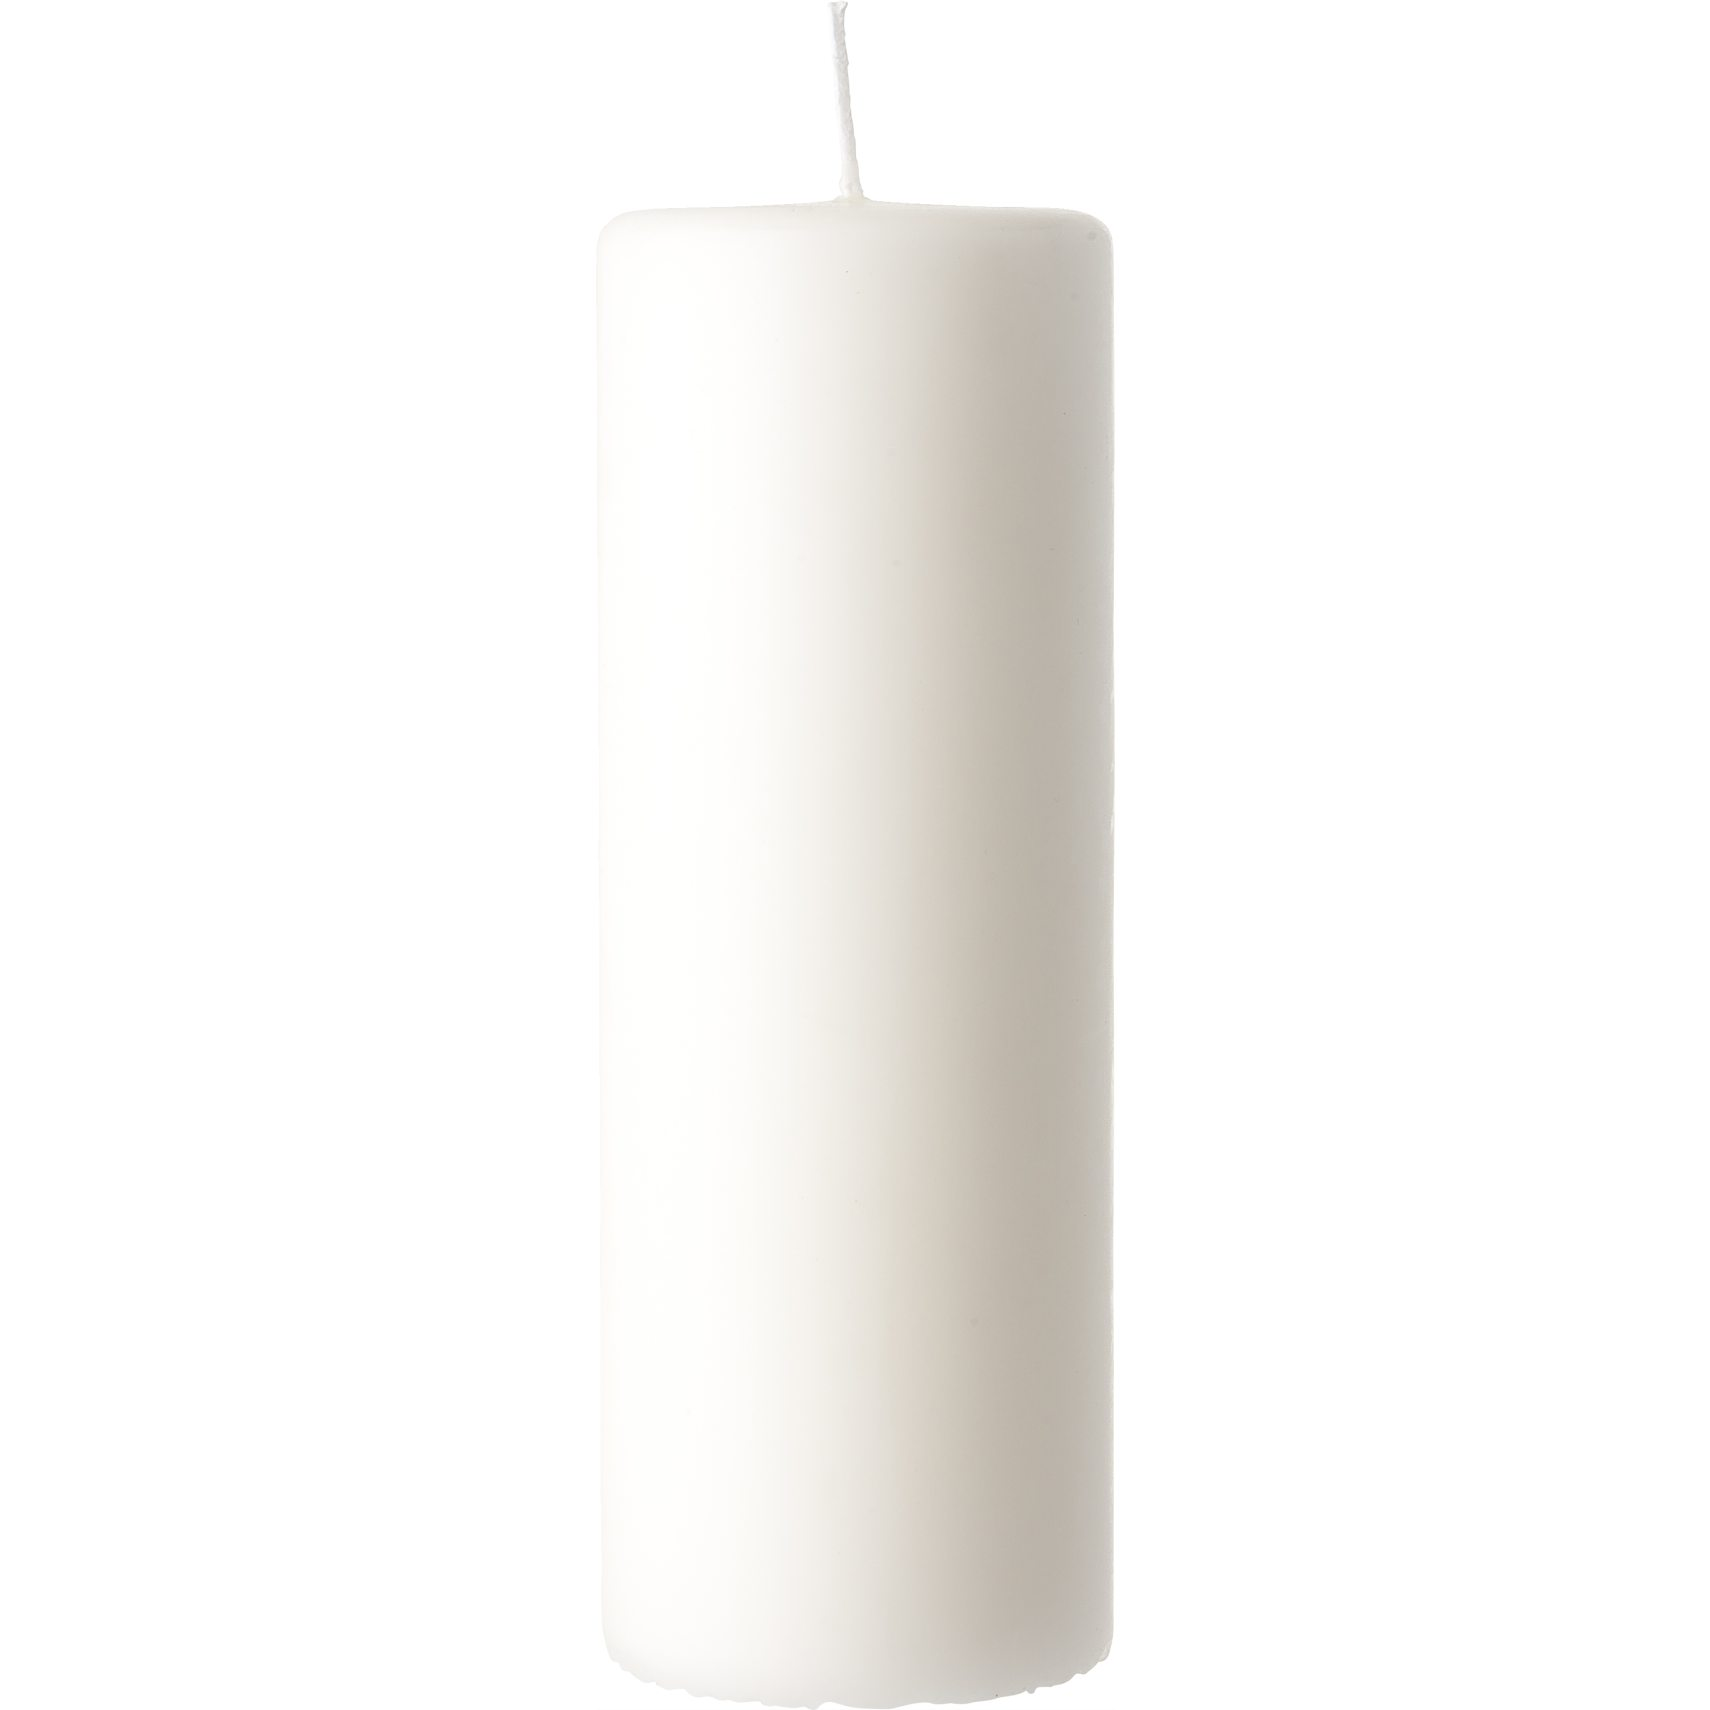 Candle Blockljus 20 x 7 cm 20 x 7 cm - Off-white paraffin